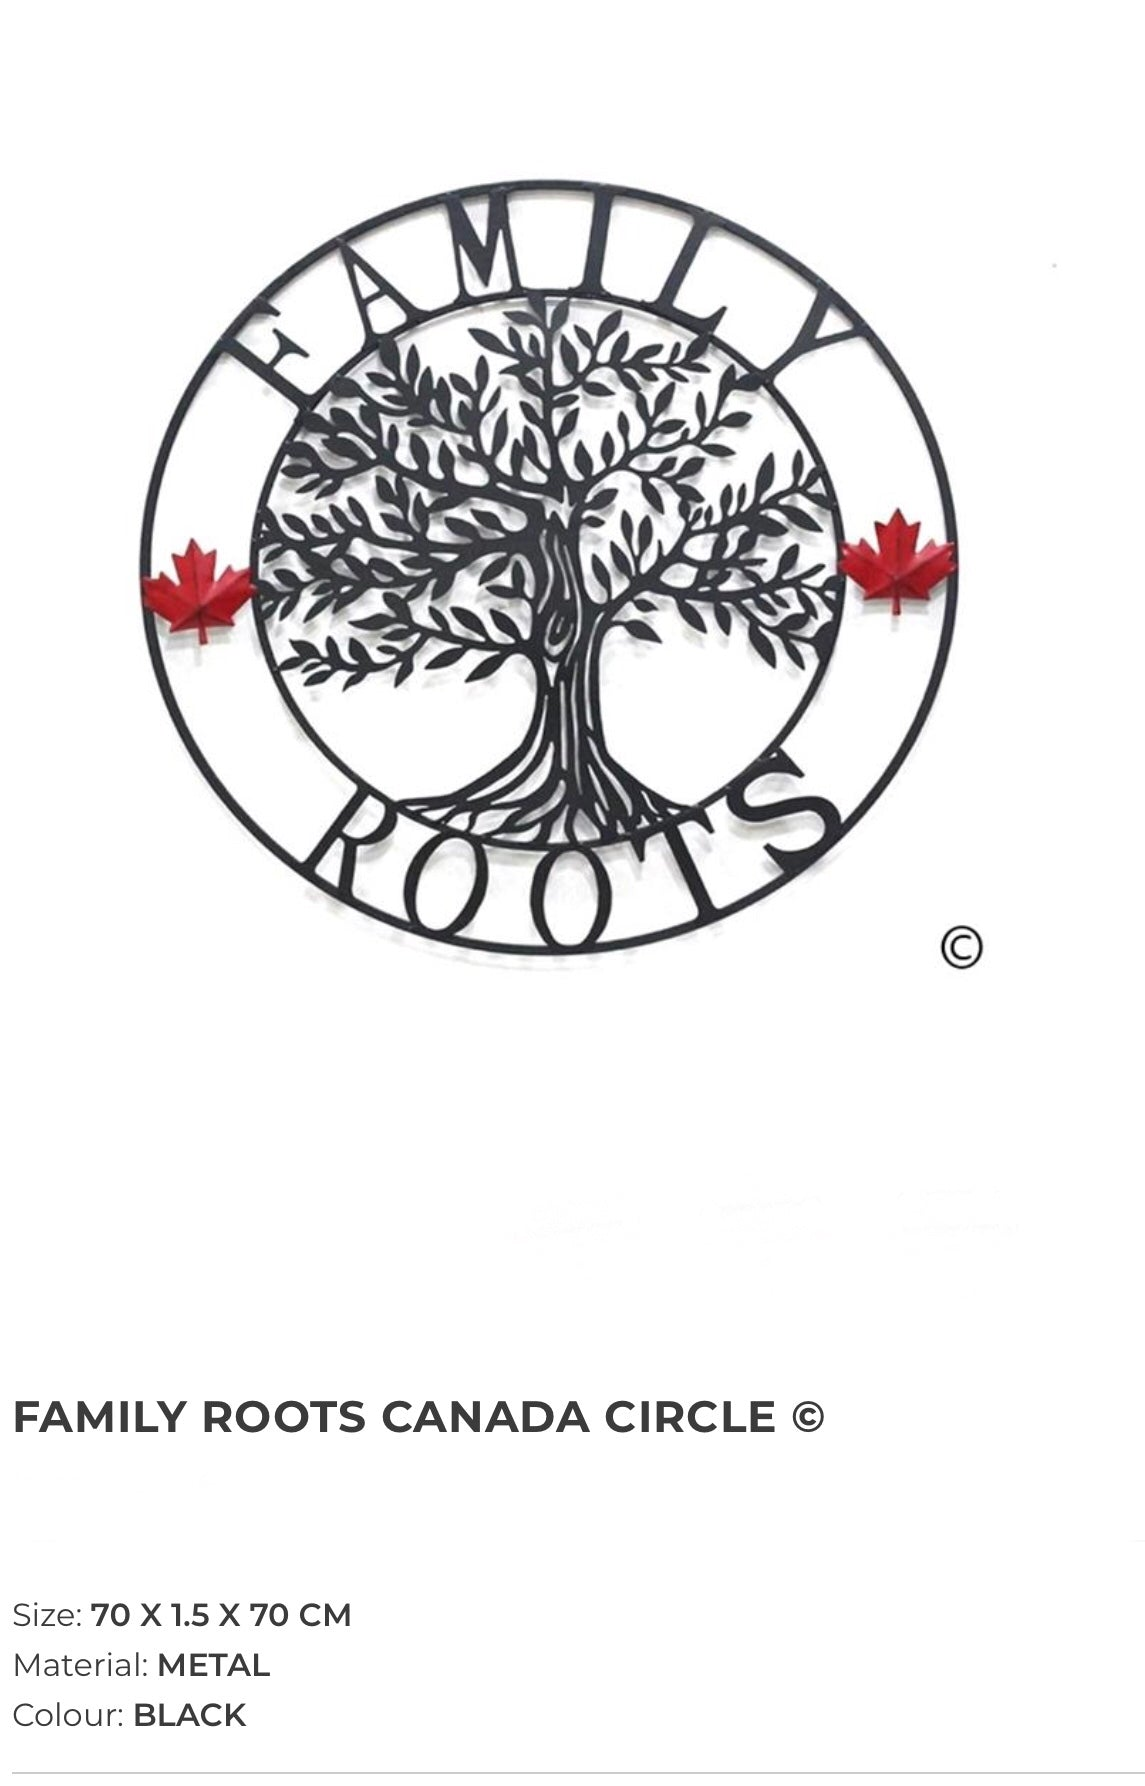 Family Roots - Canada